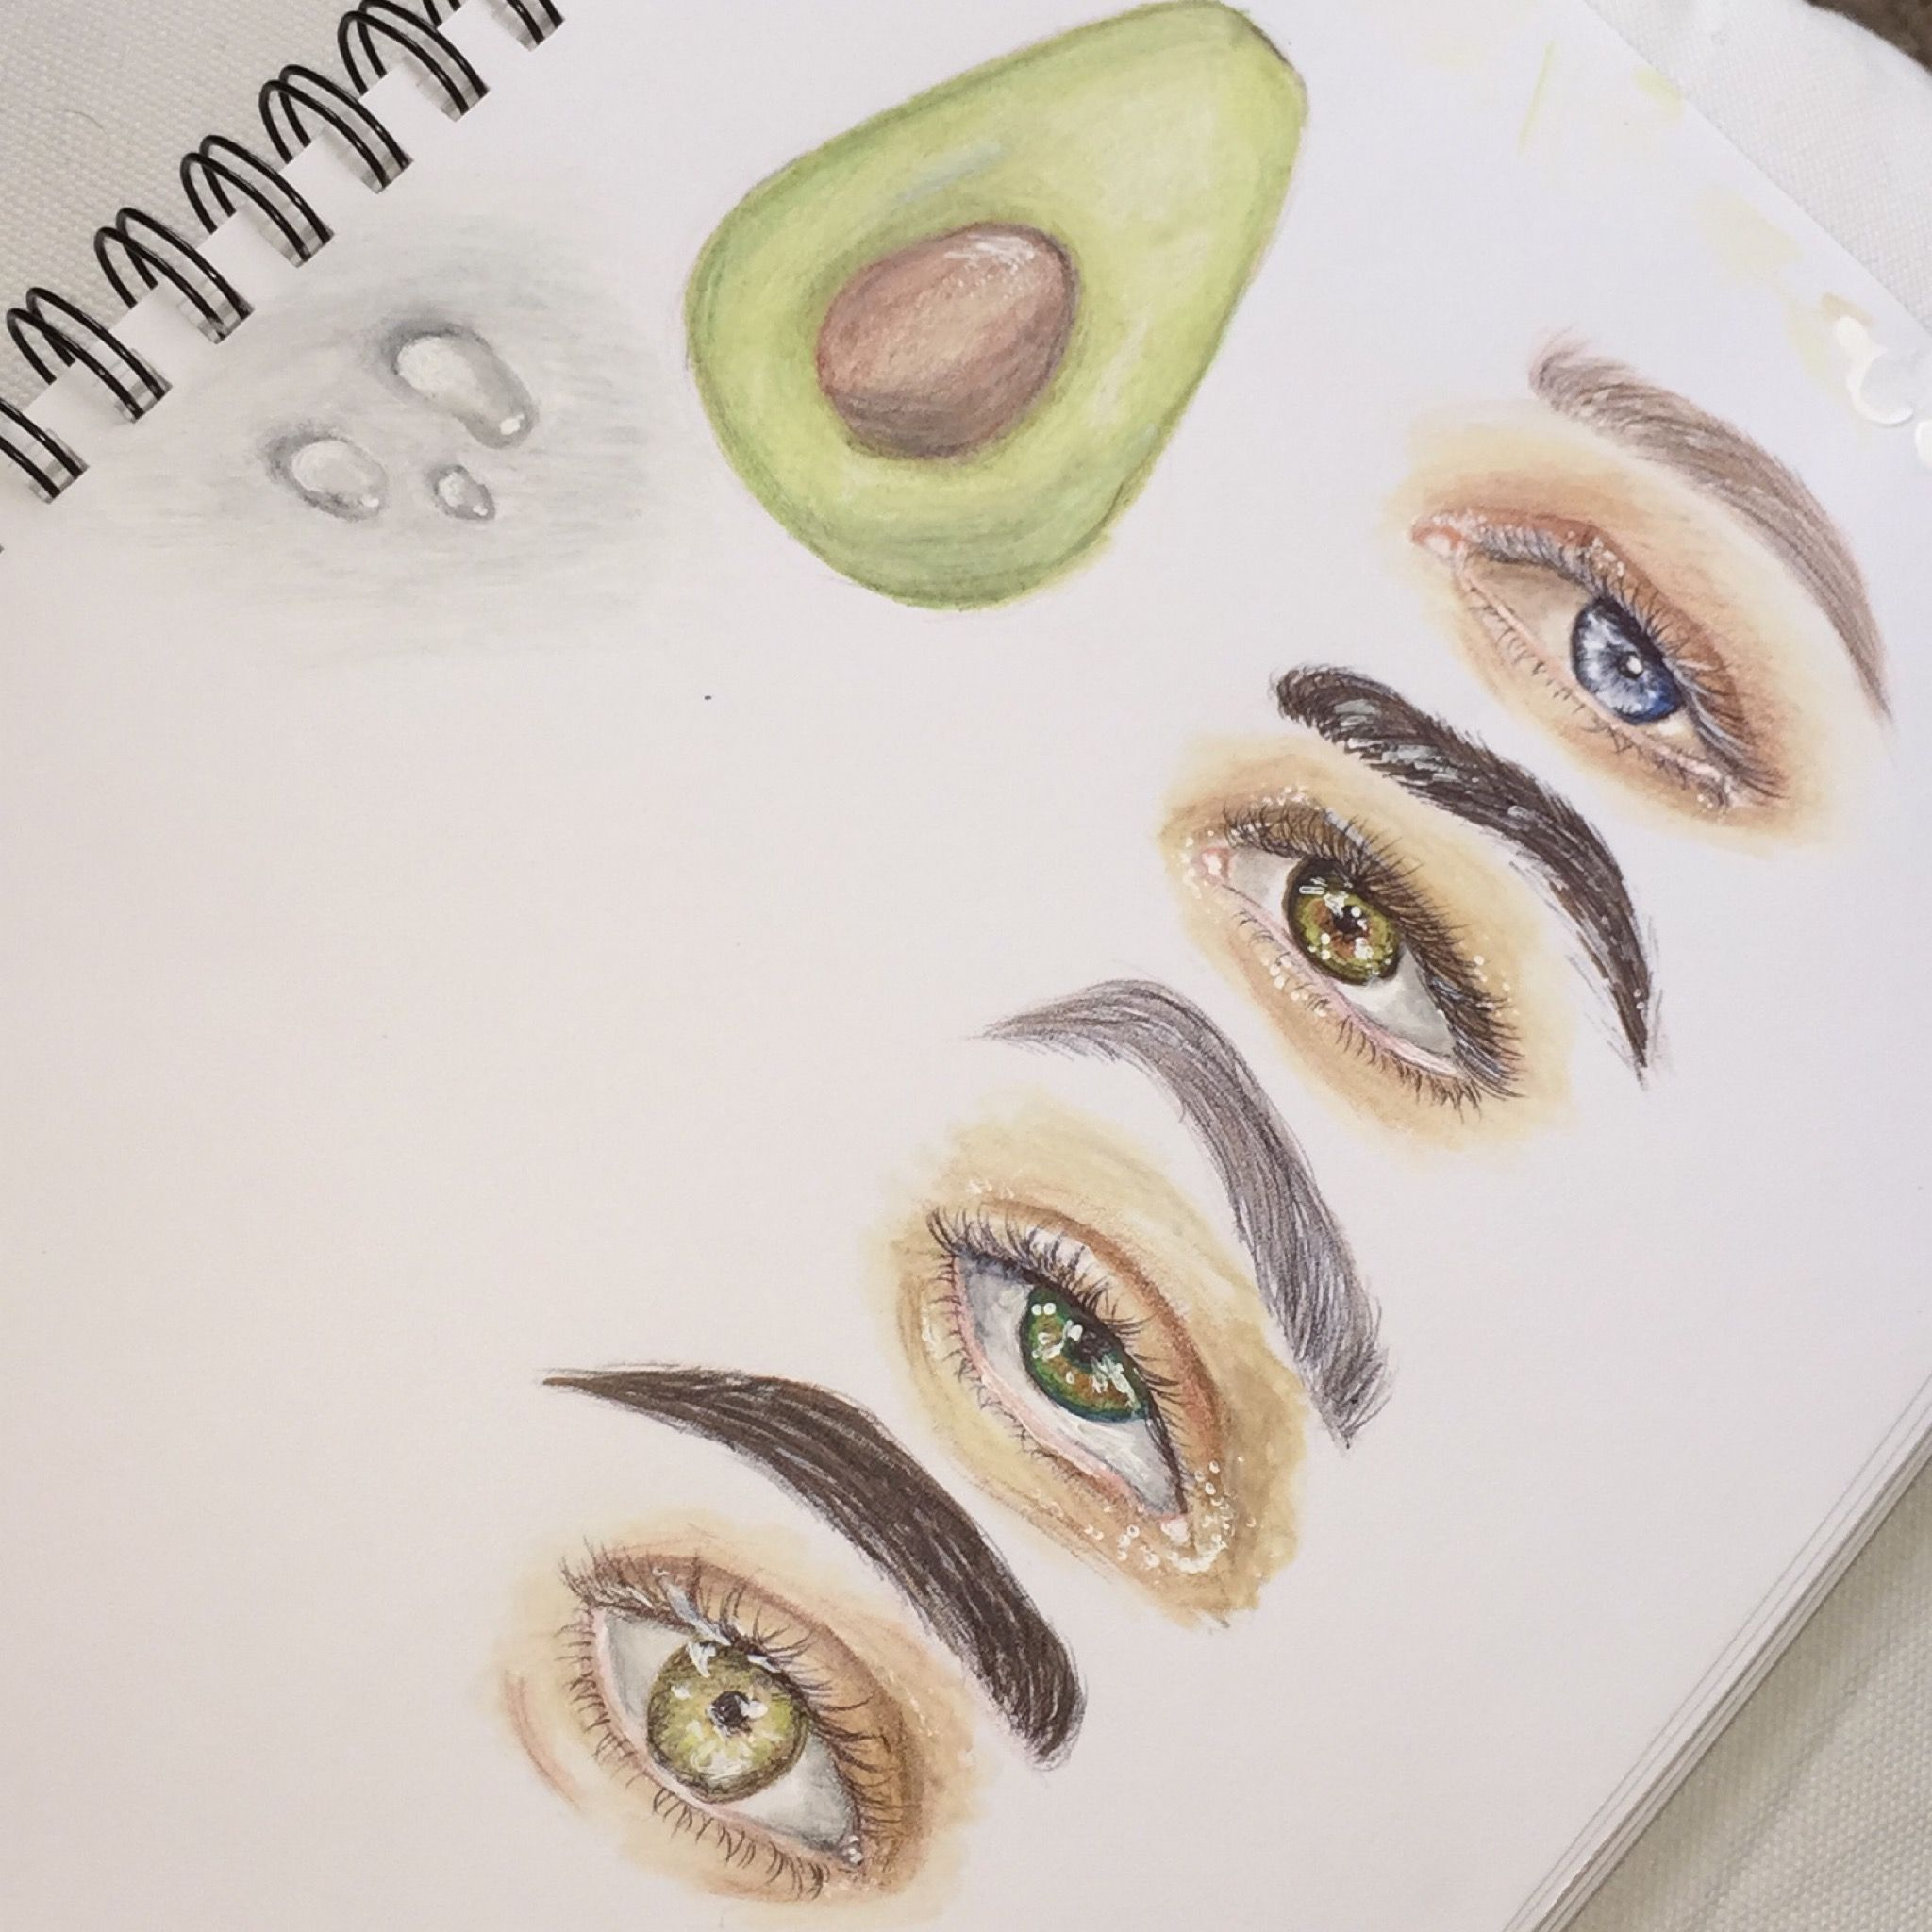 My Eye Avocado Water Drop Drawing Inspired Drawing Art Sketch Eyes Artist Paint Coloredpencils Draw Inspired Tegn Tegninger